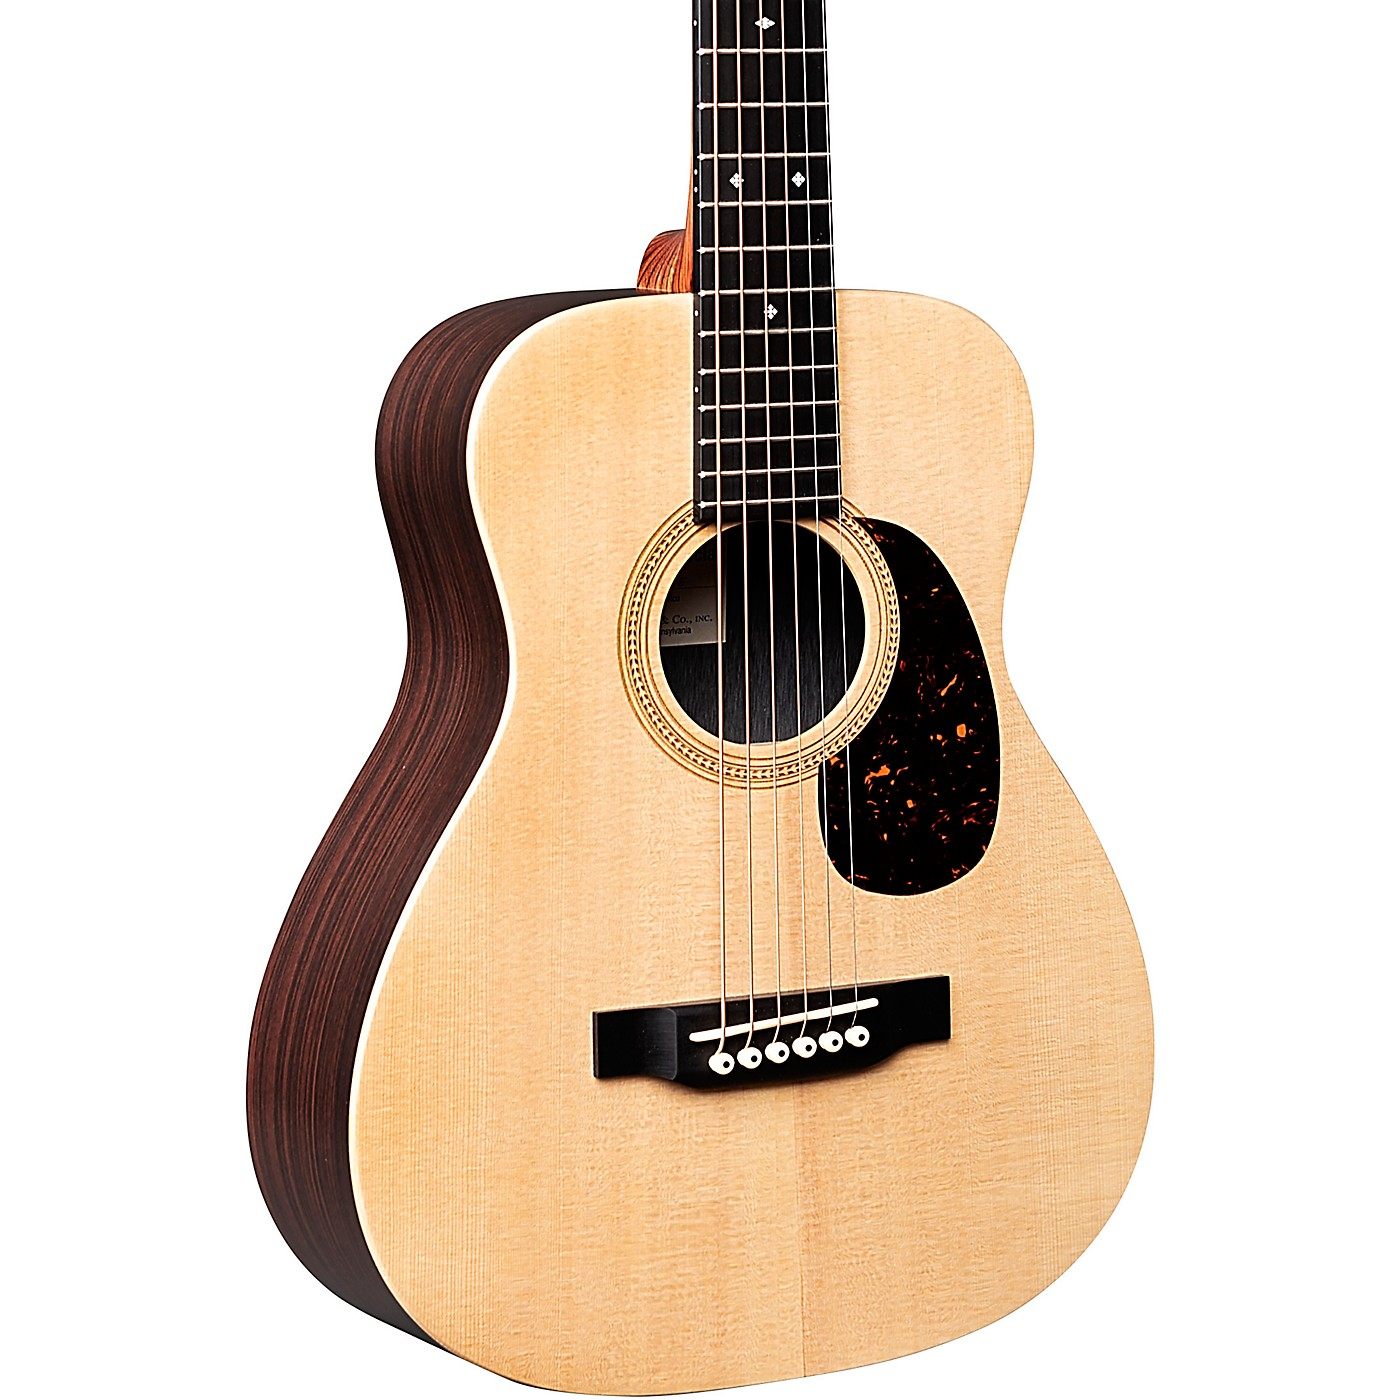 Martin LX1R Little Martin with Rosewood HPL Acoustic Guitar thumbnail